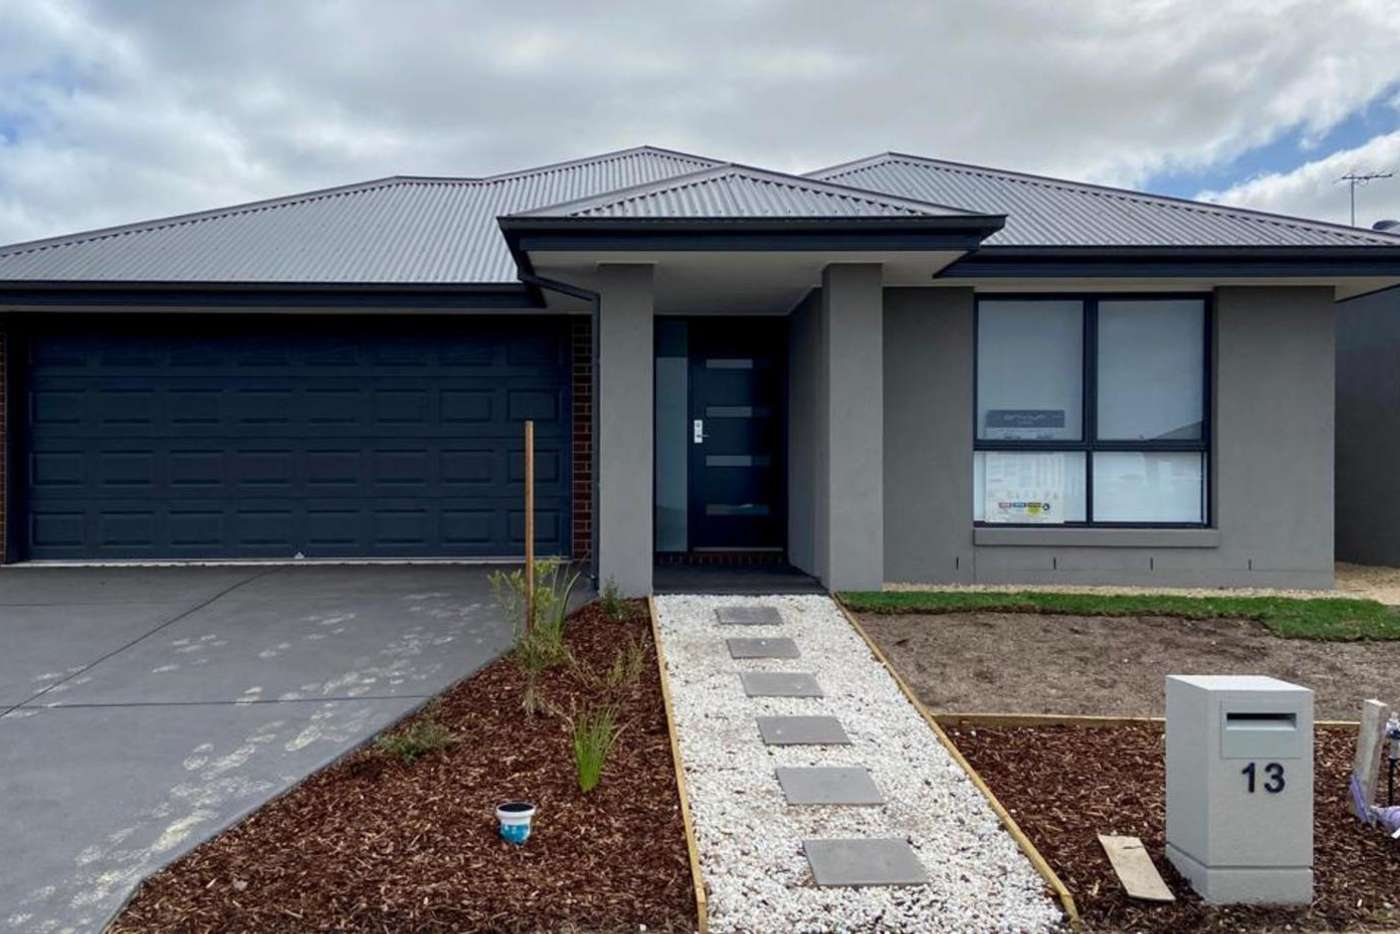 Main view of Homely house listing, 13 Boxer Drive, Wyndham Vale VIC 3024